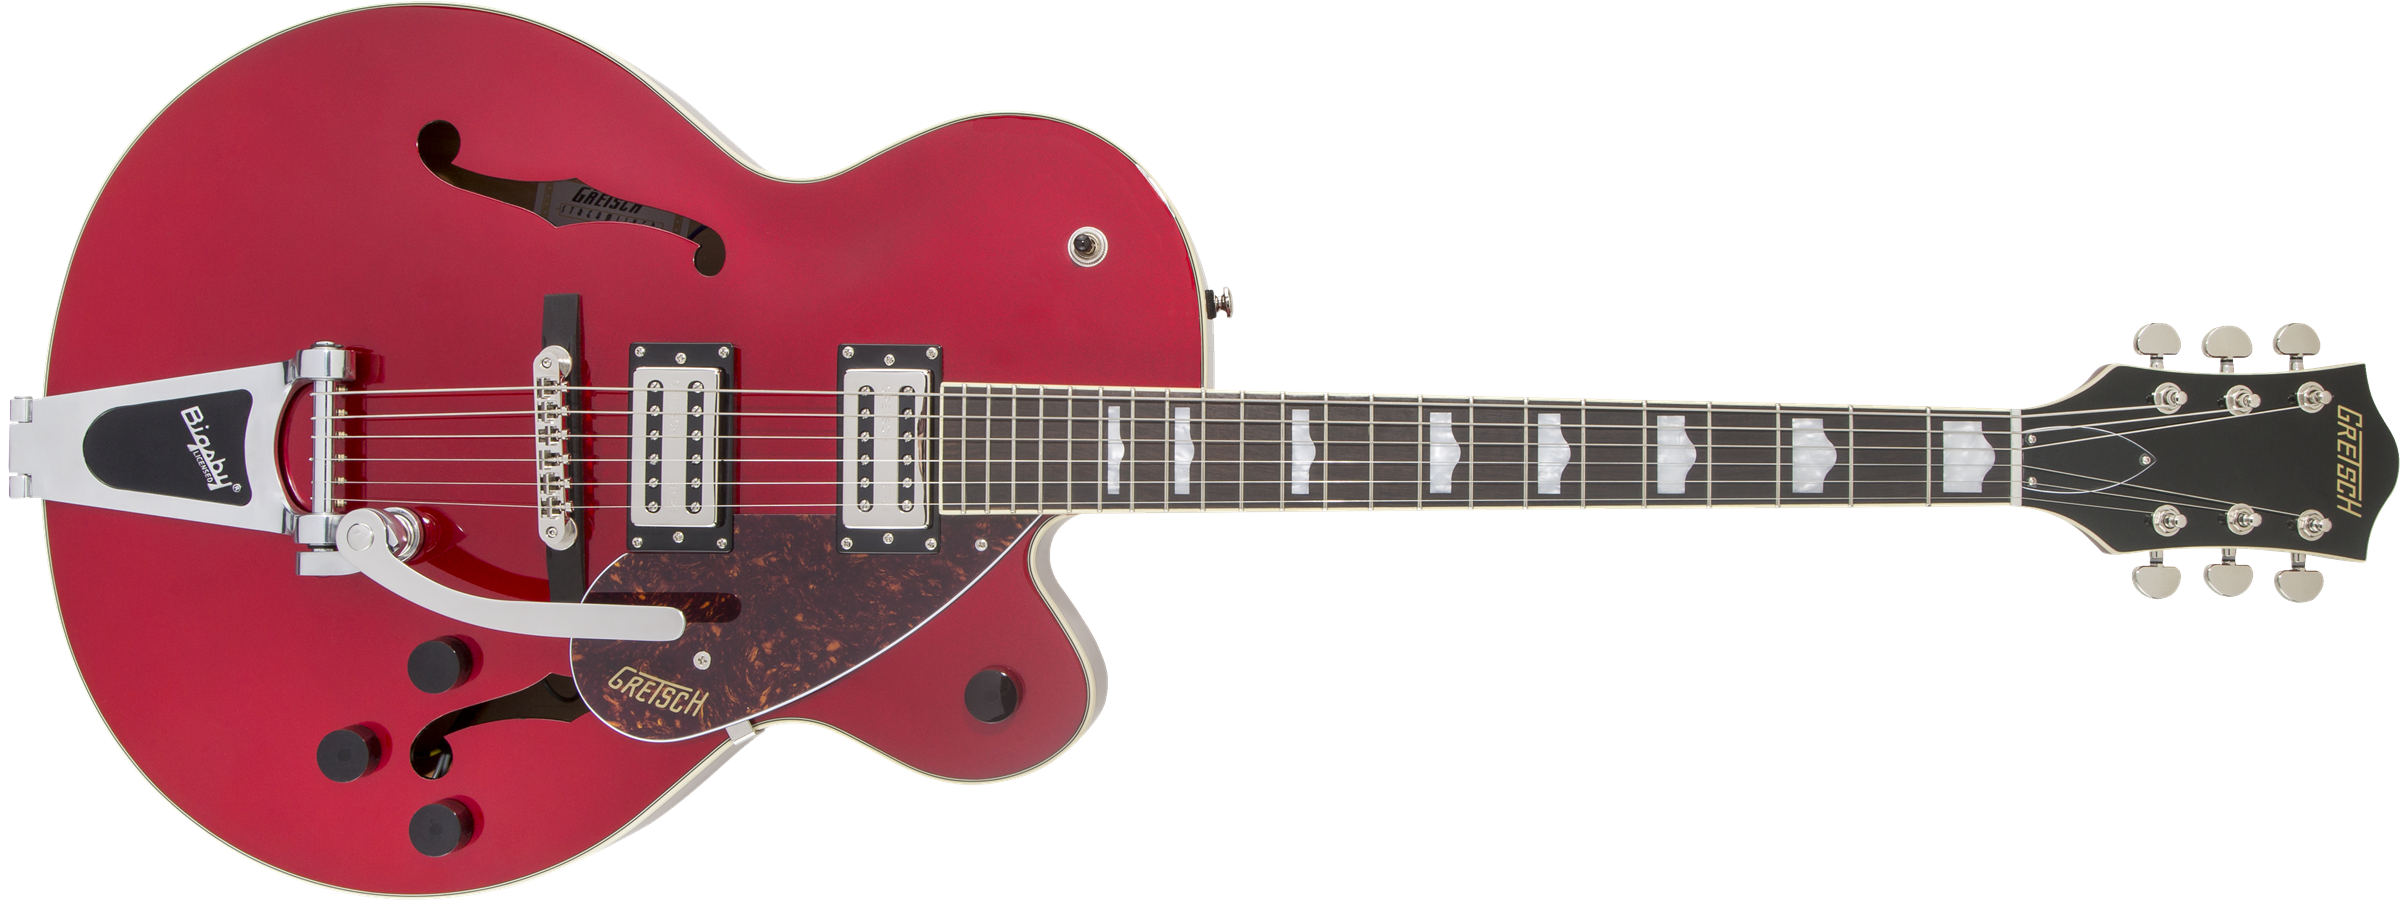 GRETSCH G2420T Streamliner Hollow Body with Bigsby, Laurel Fingerboard, BroadTron BT-2S Pickups, Candy Apple Red